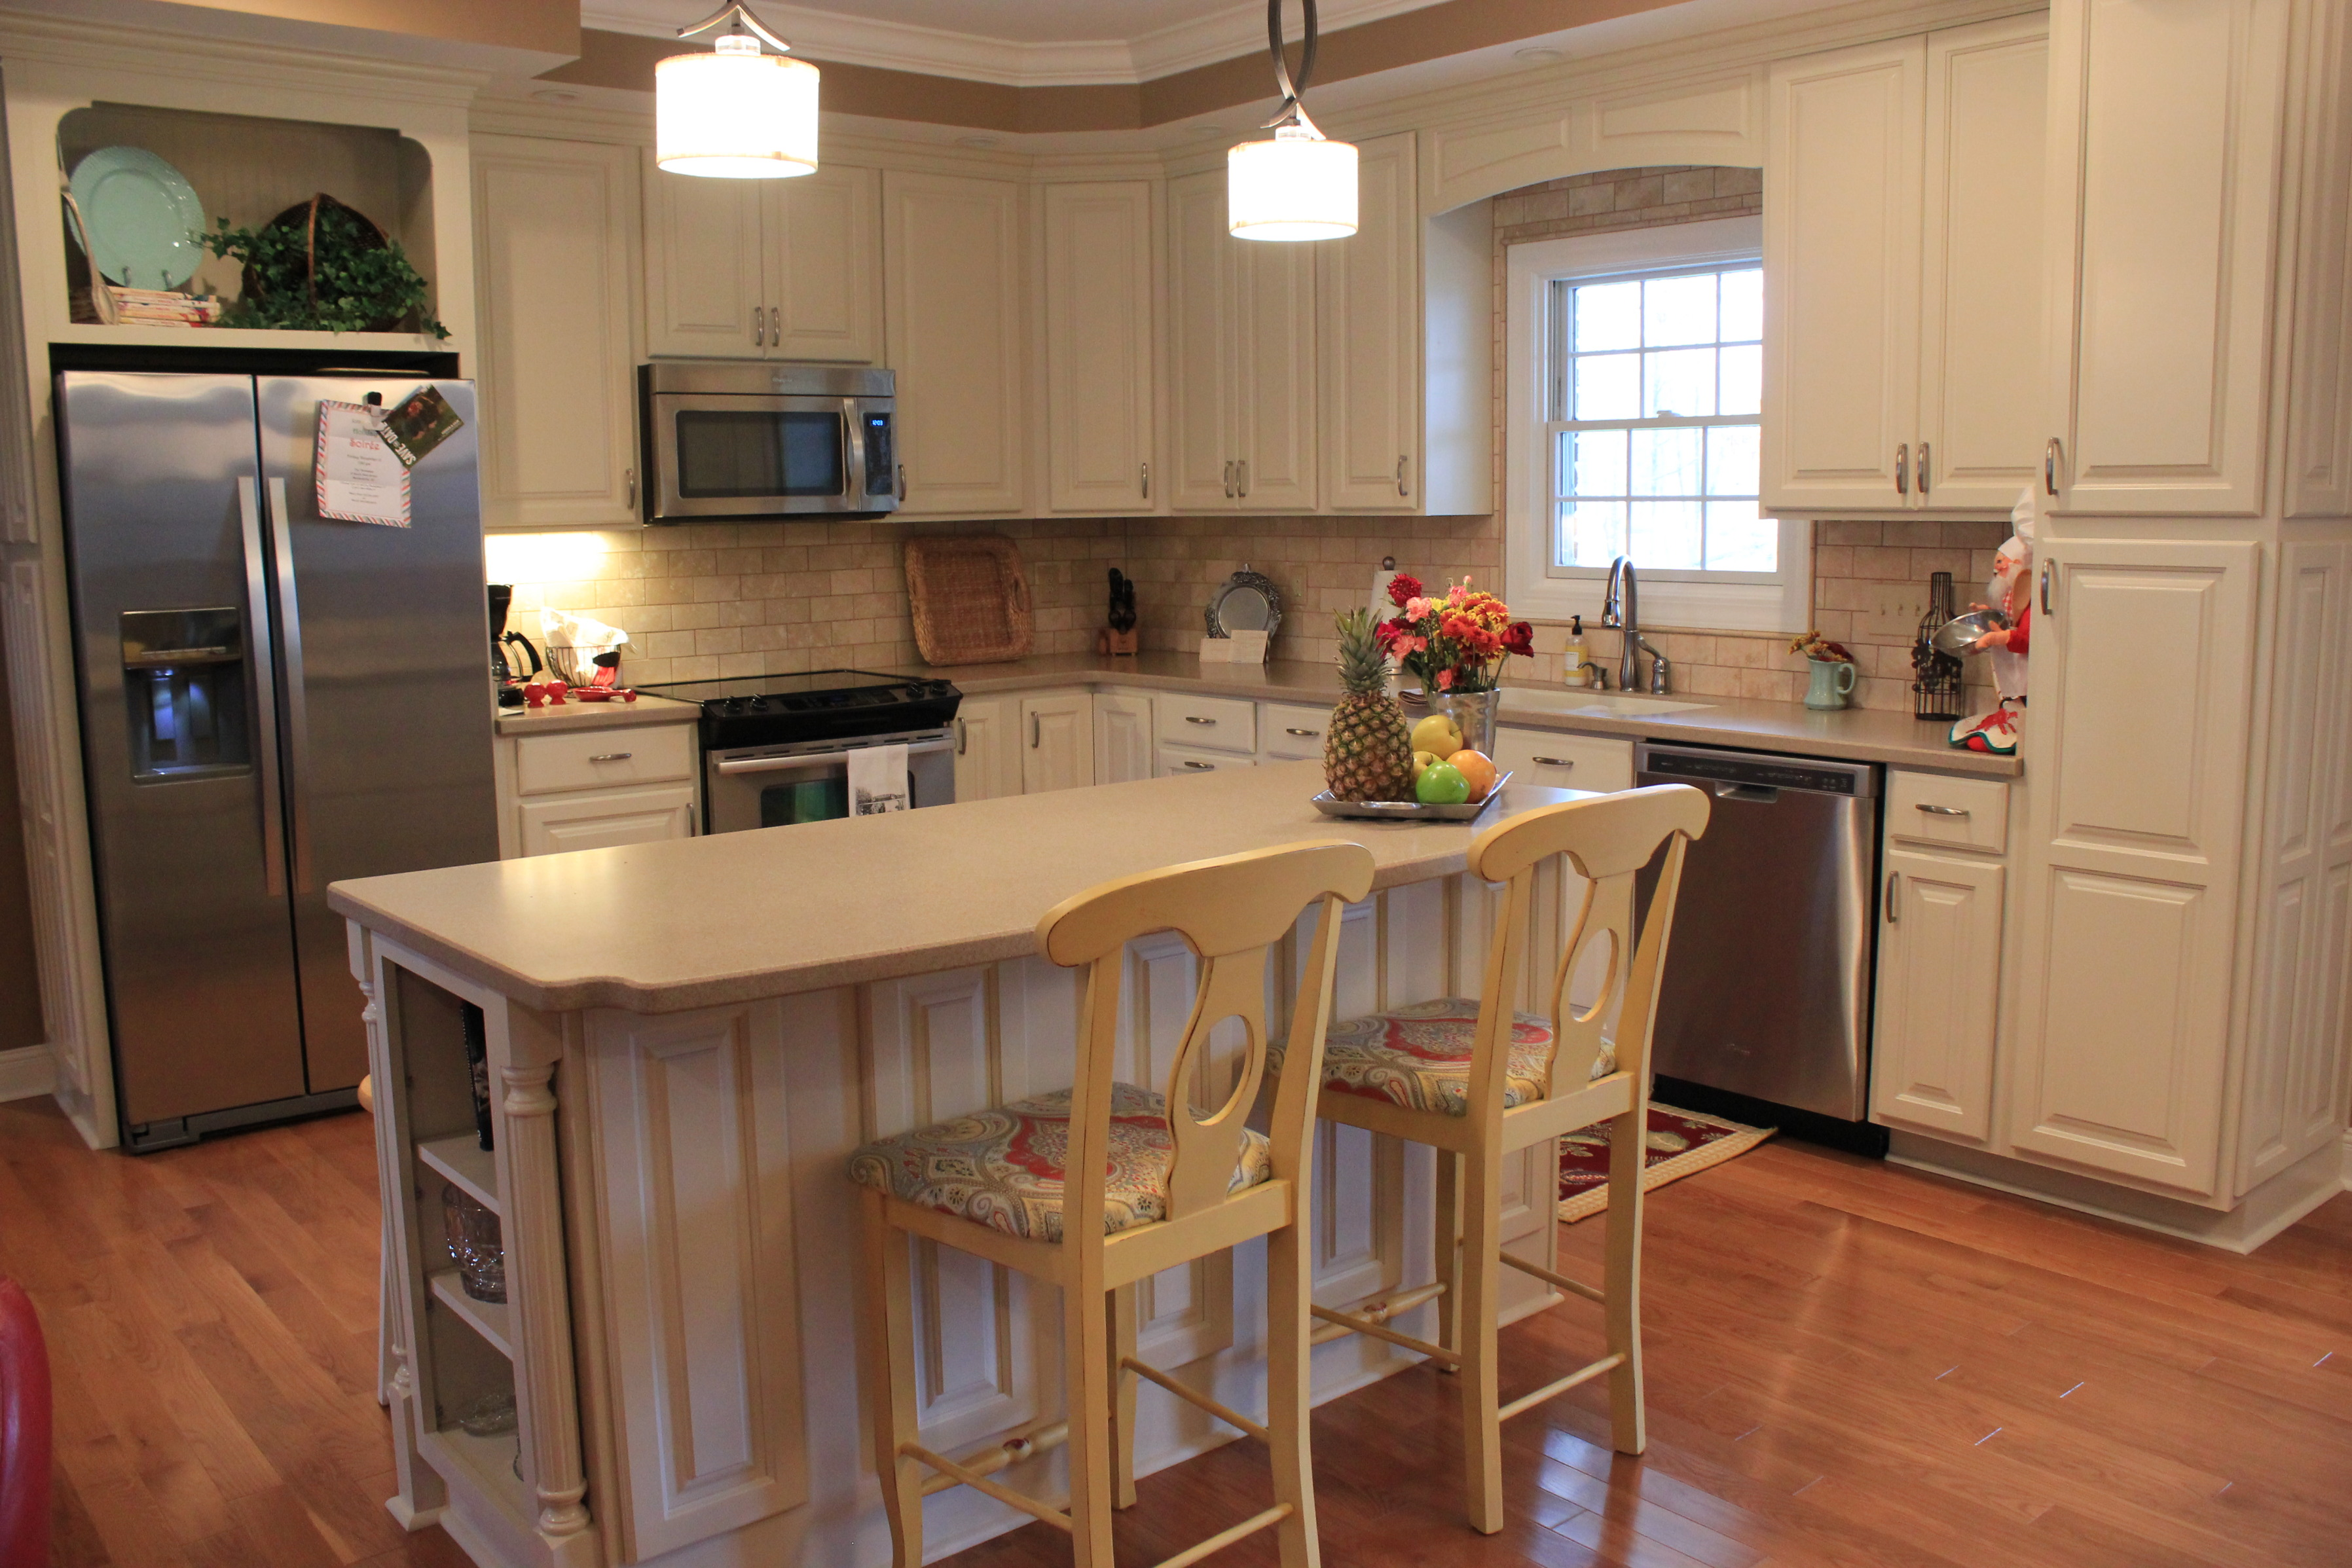 Images of cabinets for kitchen 86 with images of cabinets for Quaker kitchen design